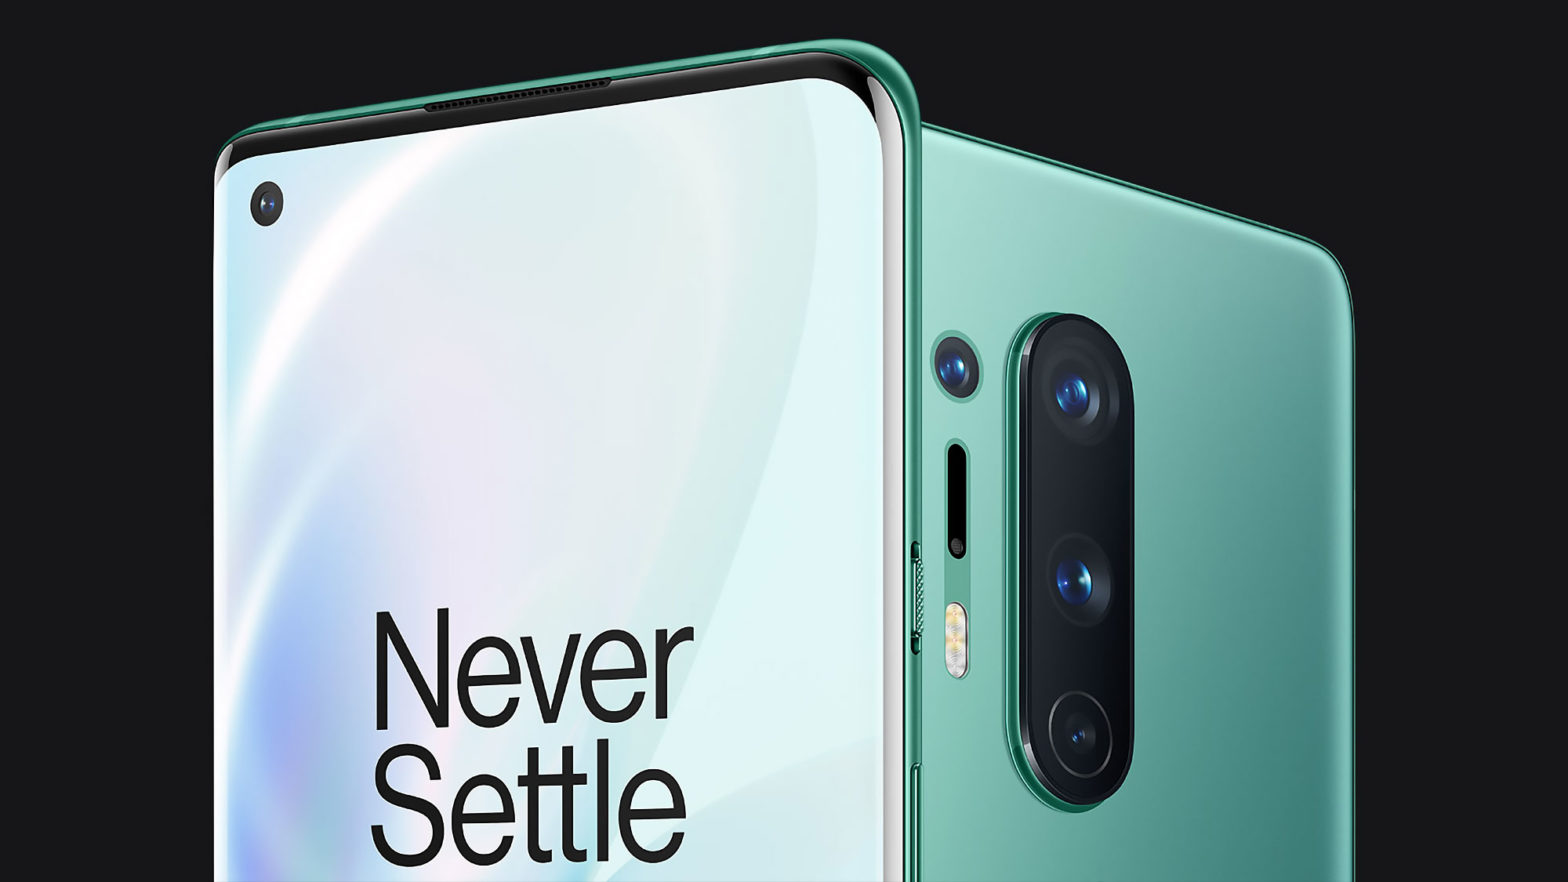 OnePlus 8 Series Smartphone Launched